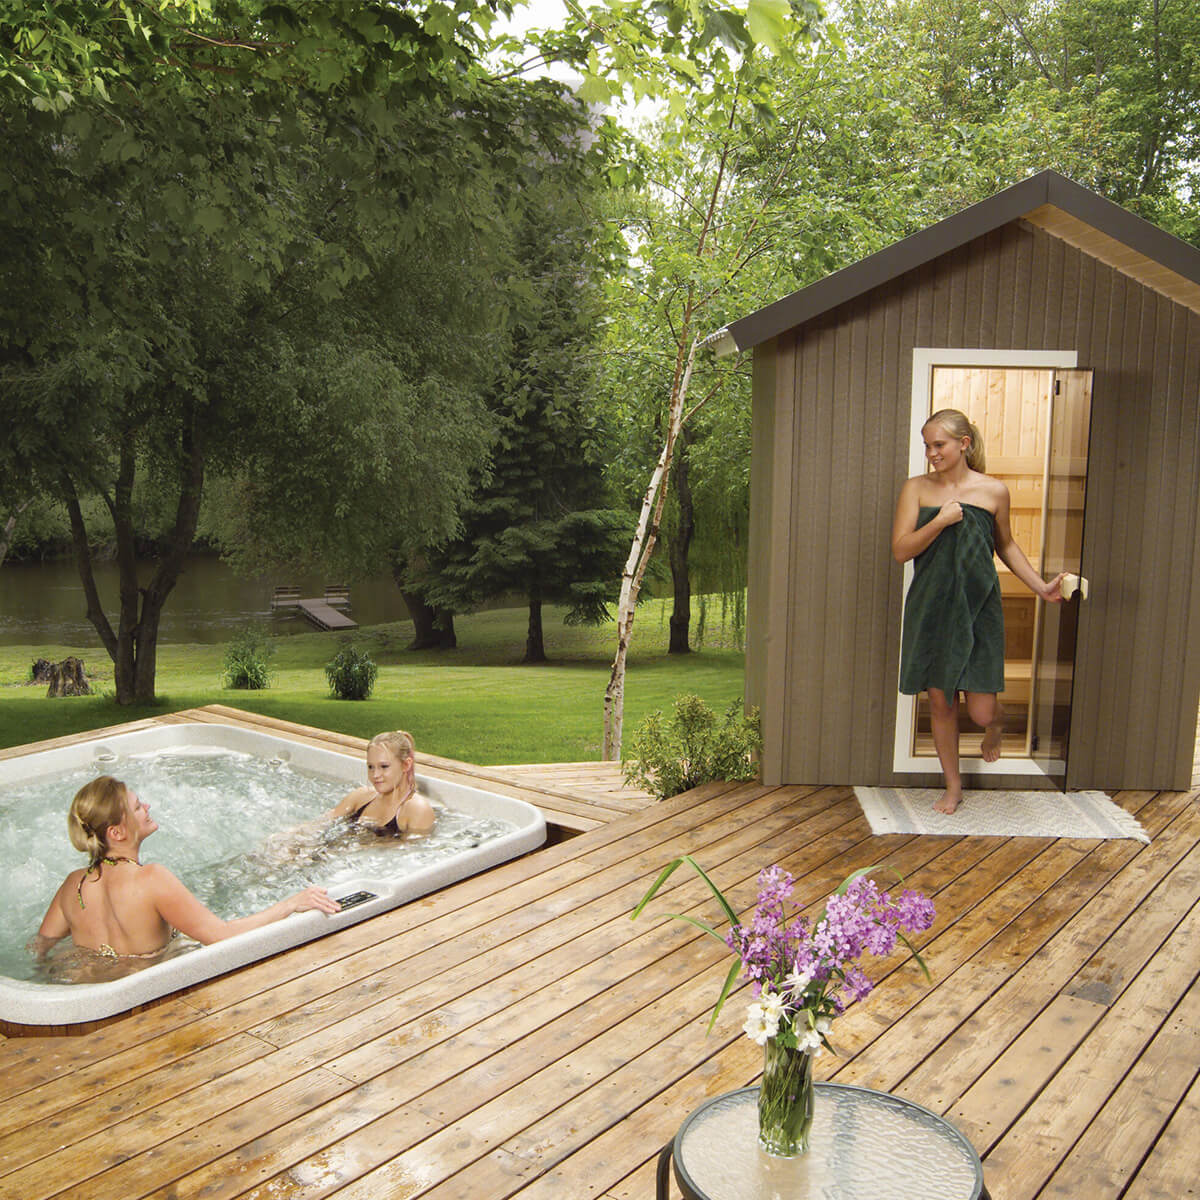 Patio Outdoor Sauna Family Image